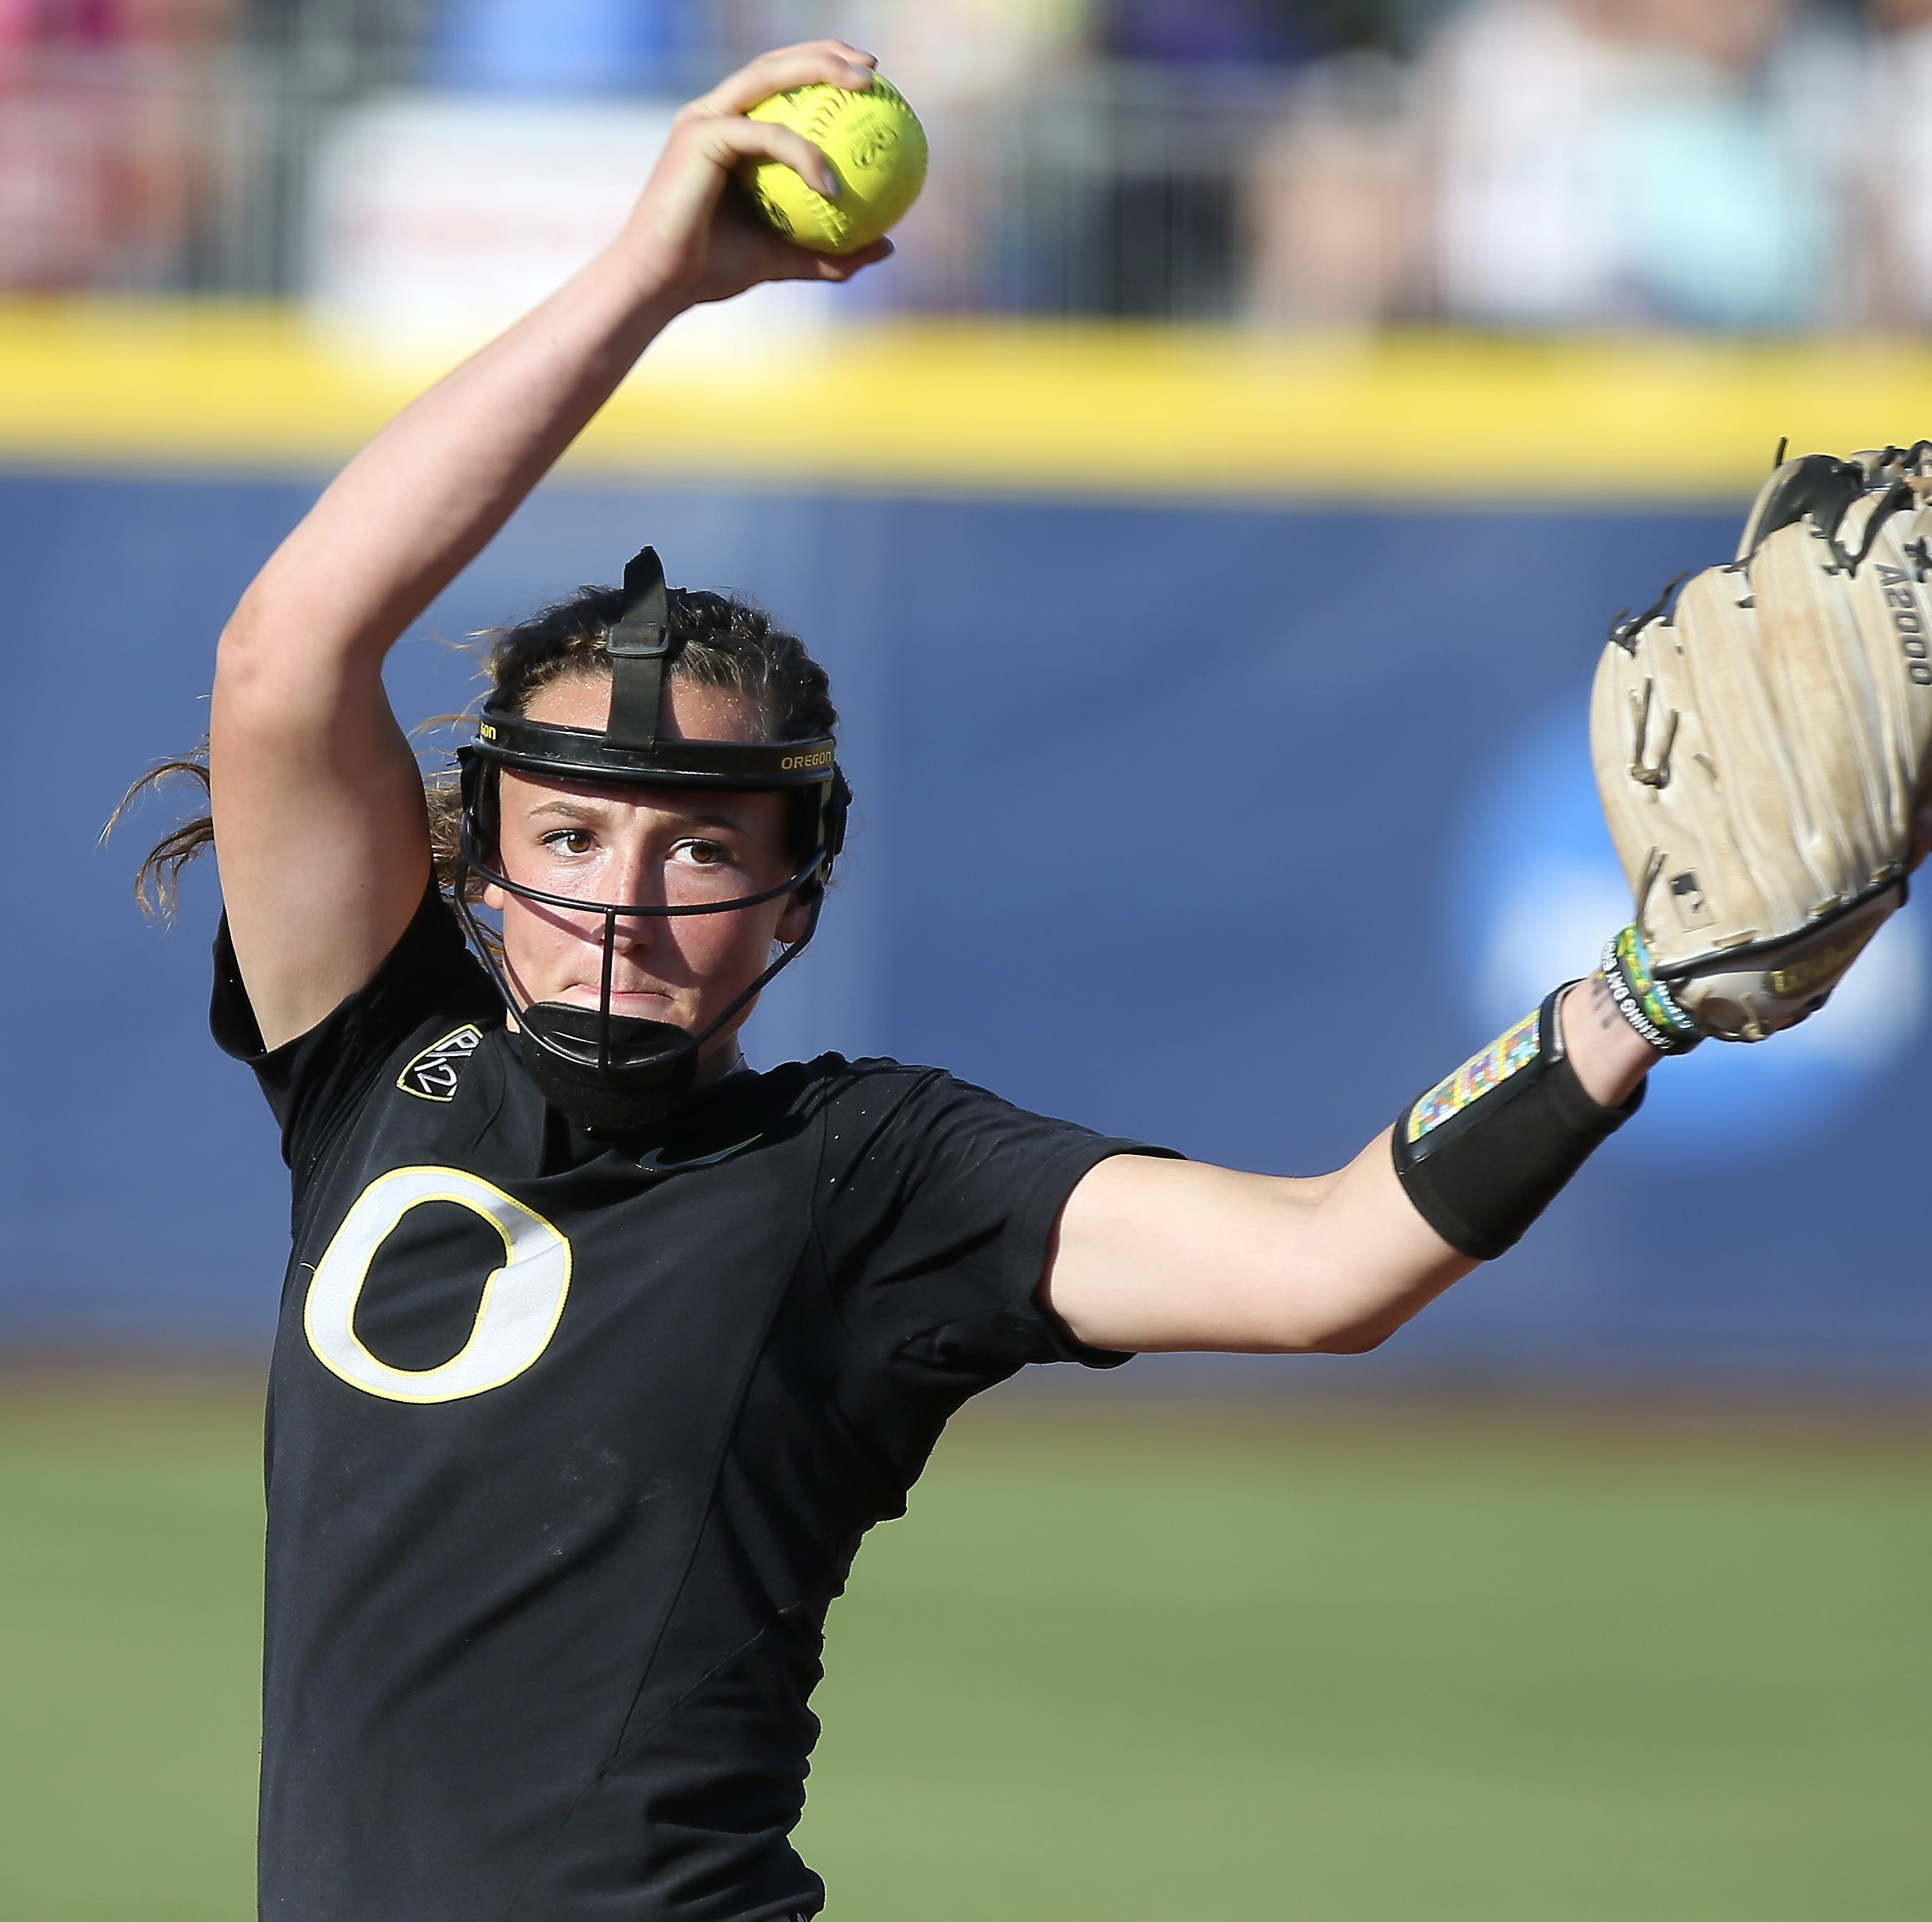 All-American pitcher Kleist transferring to UL